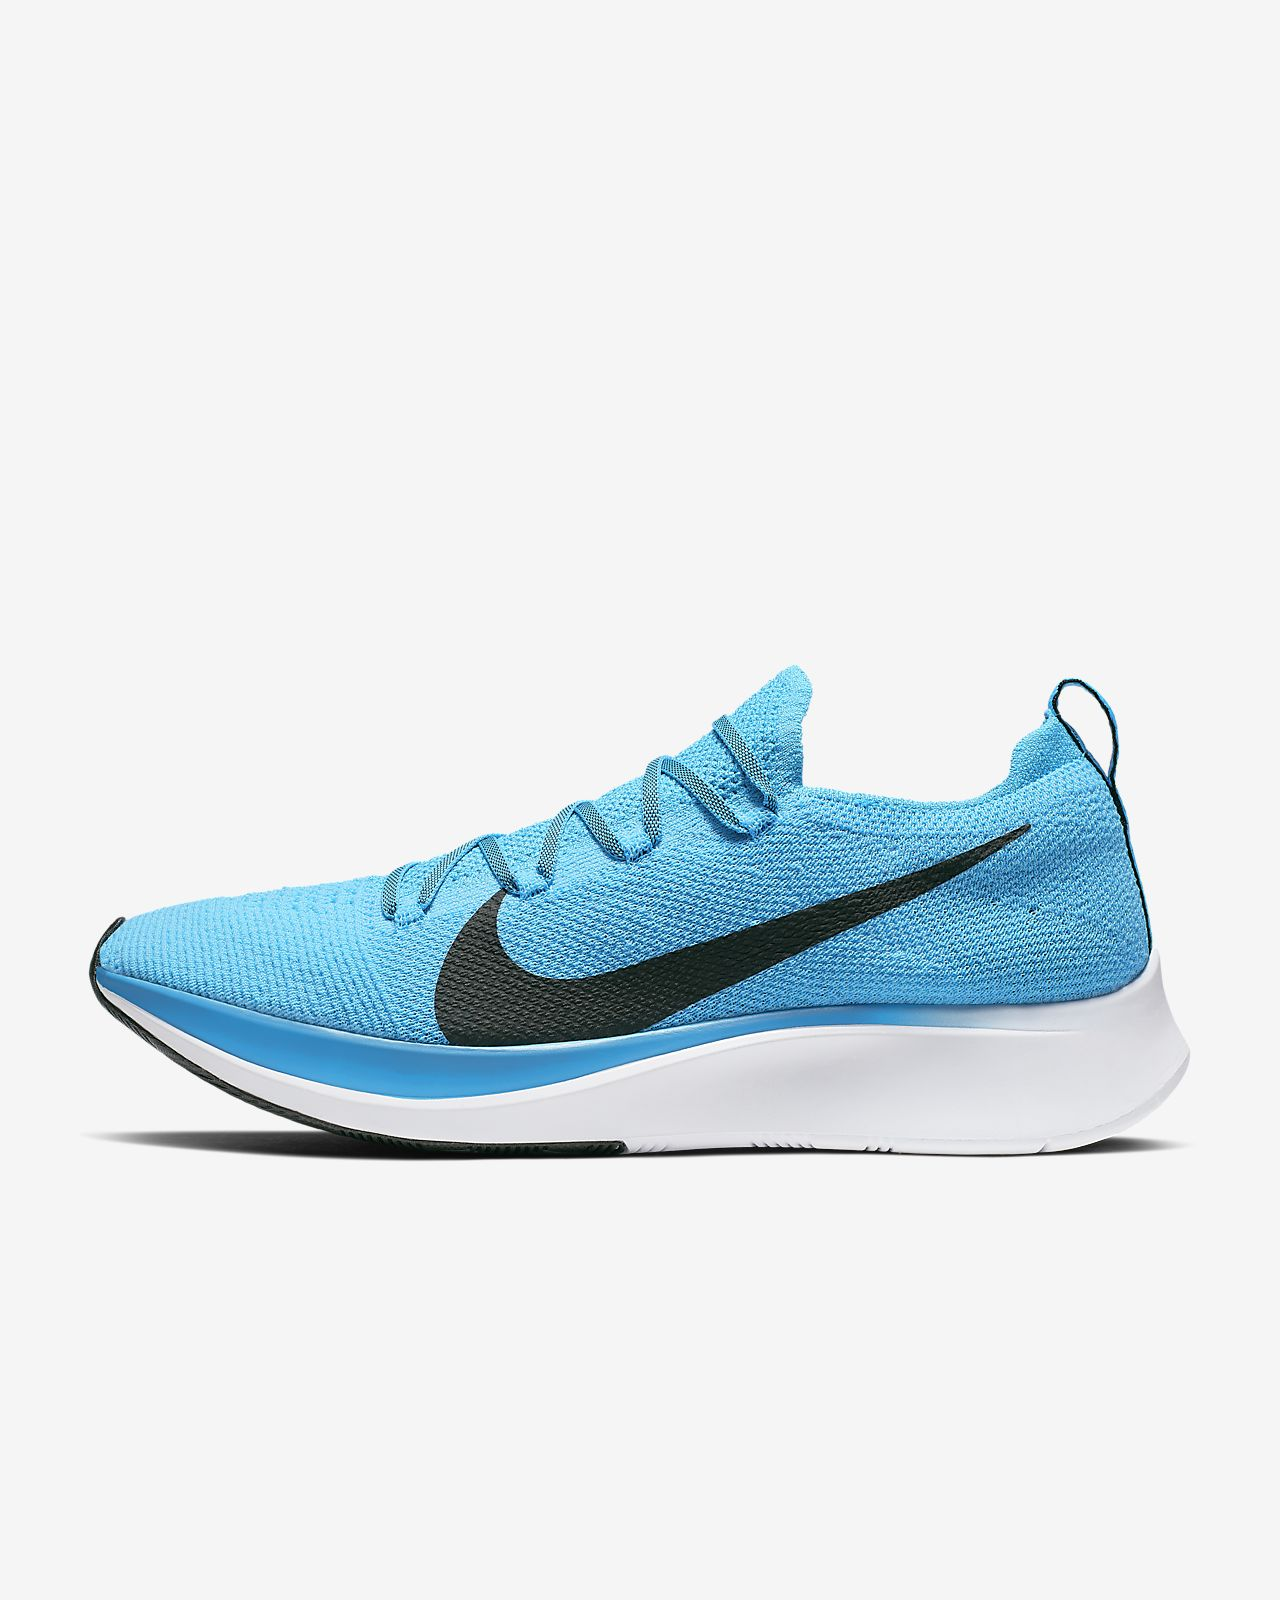 734f4532db8c1 Nike Zoom Fly Flyknit Men s Running Shoe. Nike.com CA